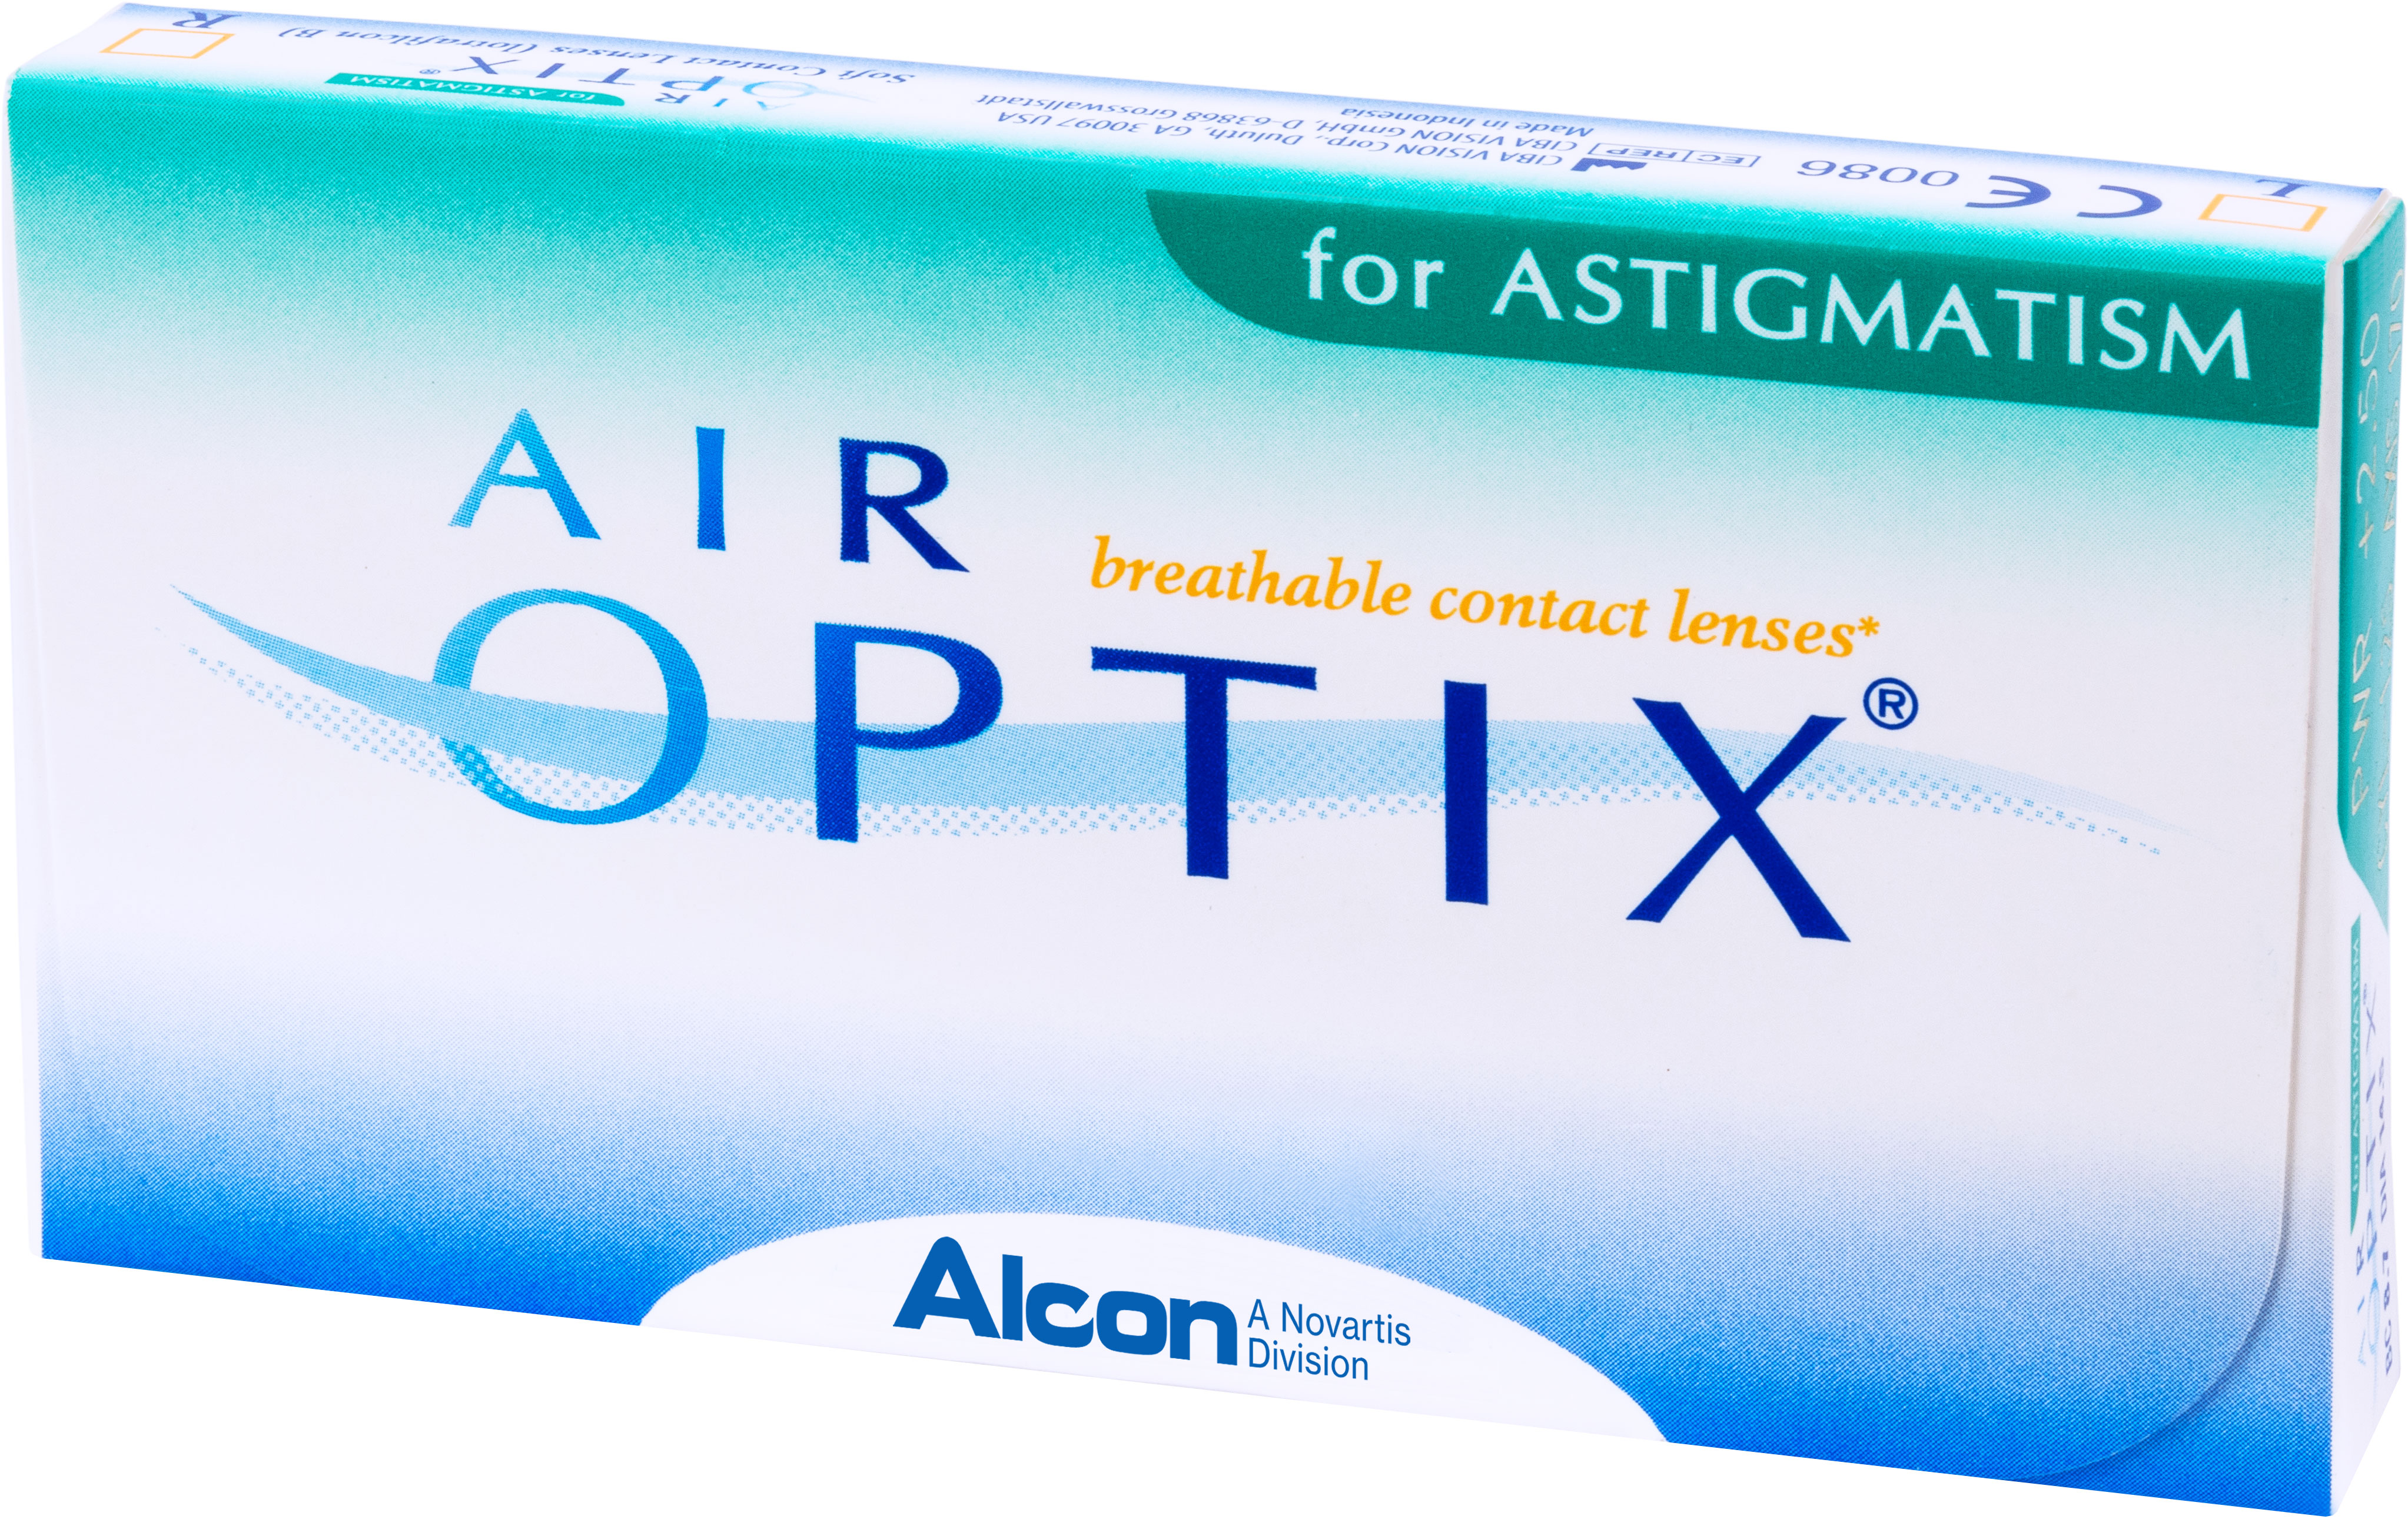 Аlcon контактные линзы Air Optix for Astigmatism 3pk /BC 8.7/DIA14.5/PWR -2.00/CYL -1.25/AXIS 180100015506with Hydraclear